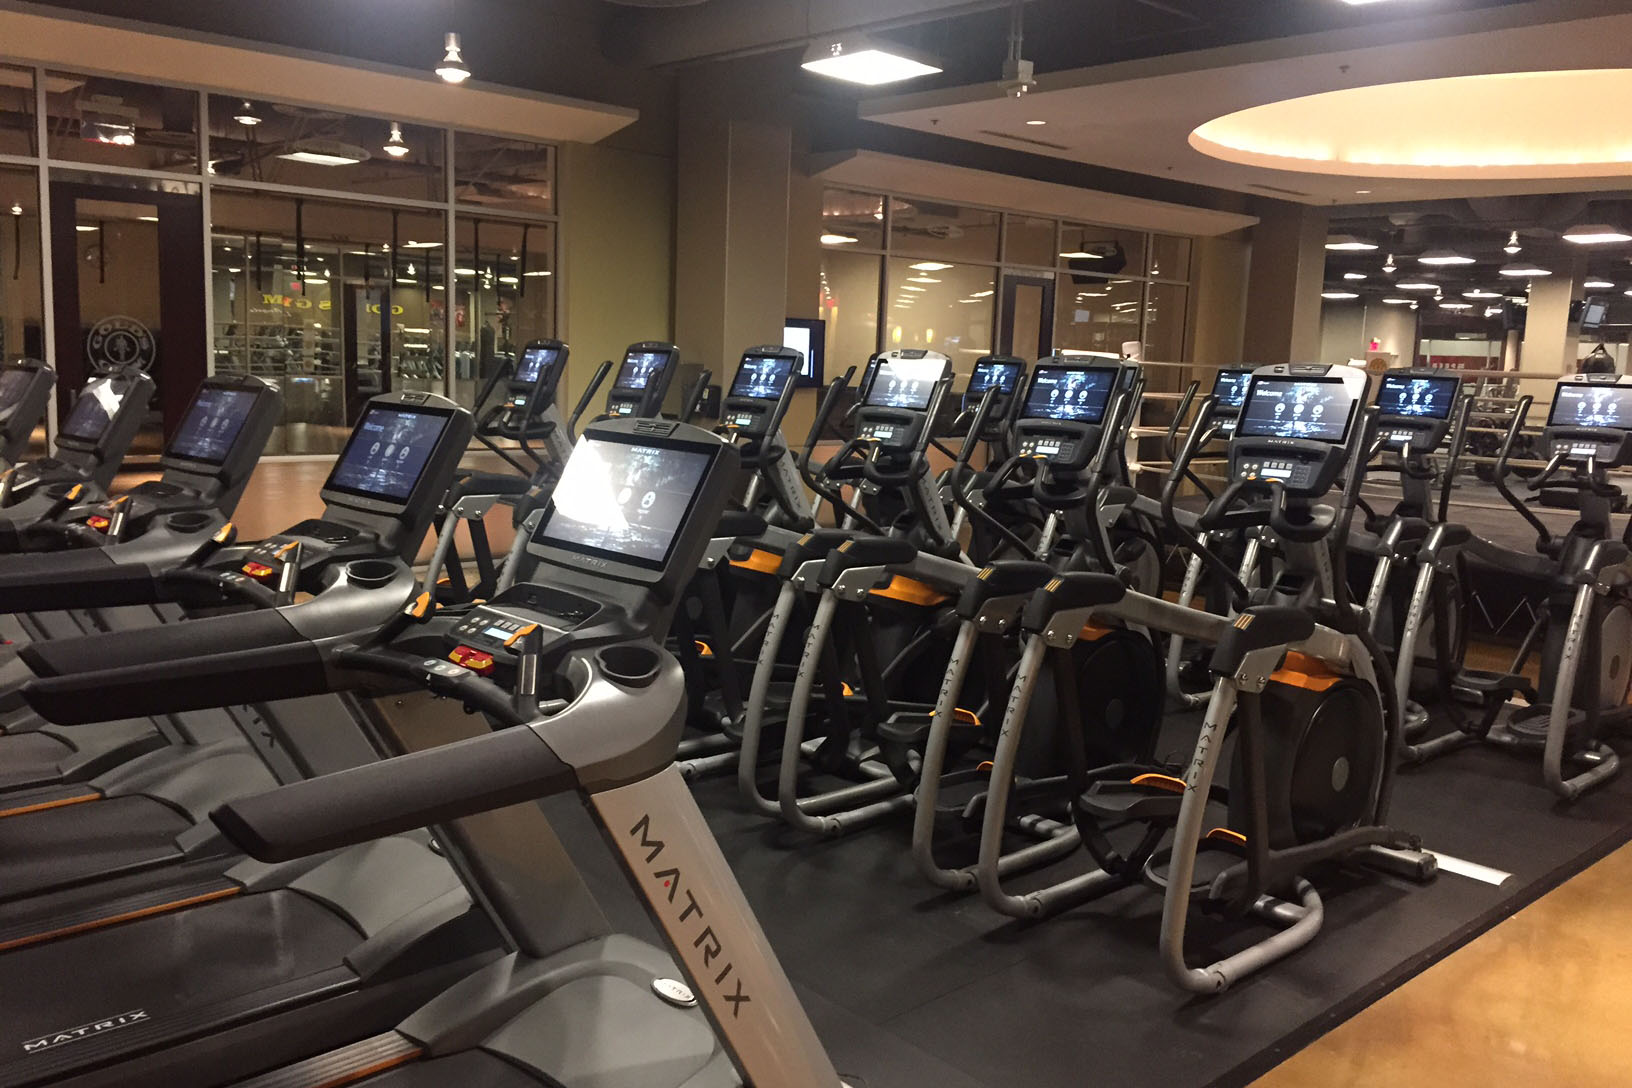 golds gym fitness equipment - HD1632×1088